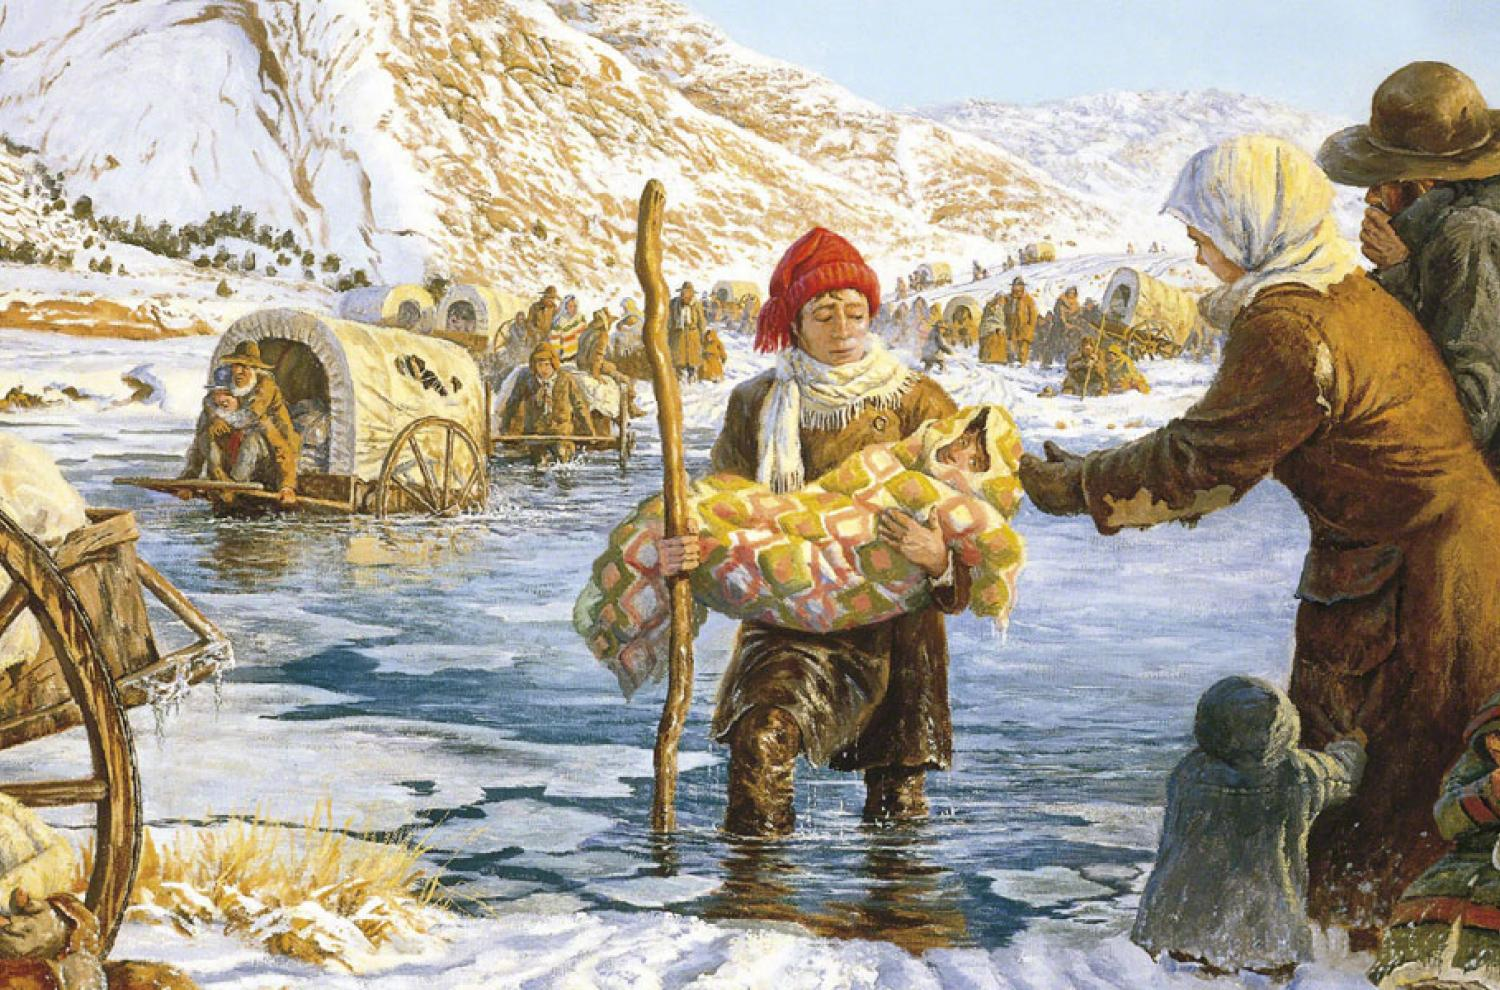 Helping the Martin Handcart Company across the Sweetwater River, by Clark Kelley Price via lds.org